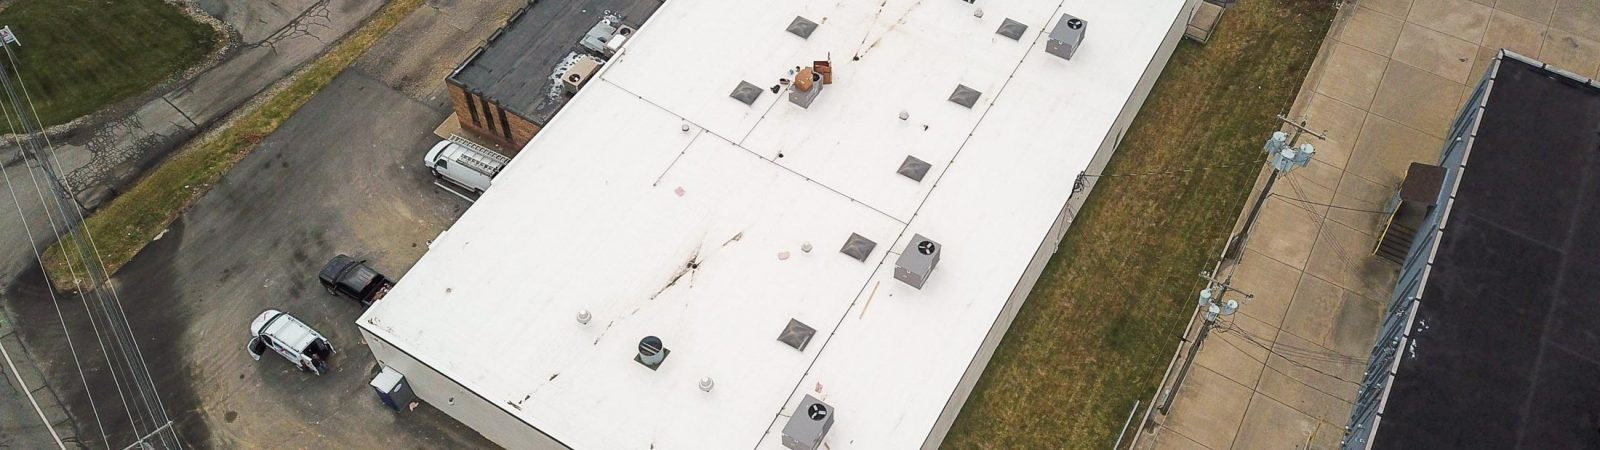 Aerial view of Single-Ply Membrane Roofing Project in Cranberry Township, PA for Camp Bow WOW